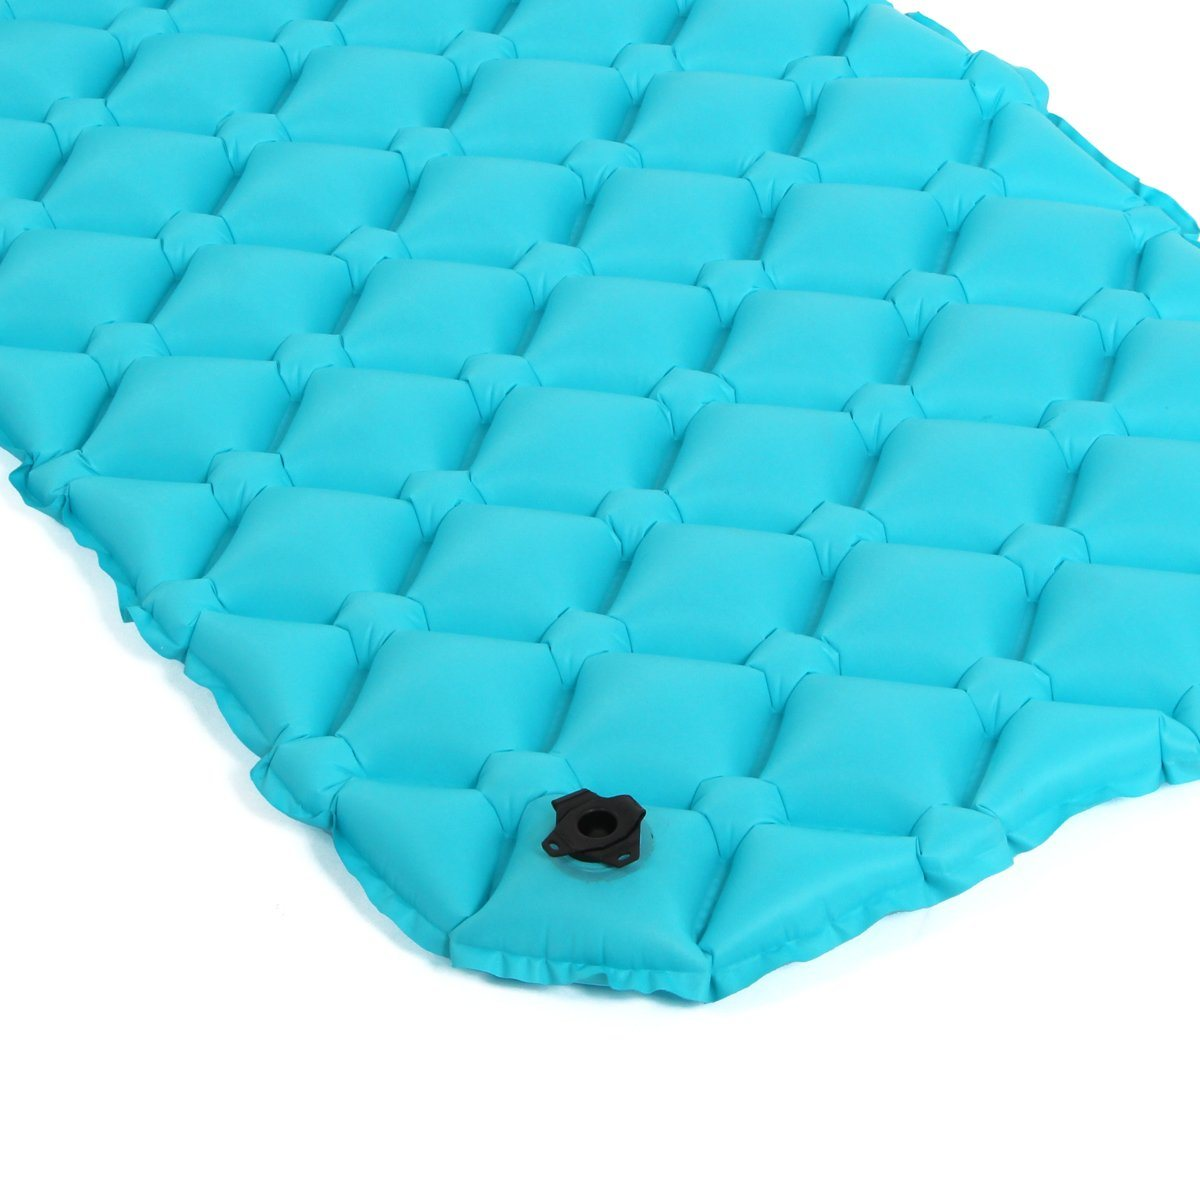 Air Tube Design Airlite Sleeping Pad with Built-in Pump